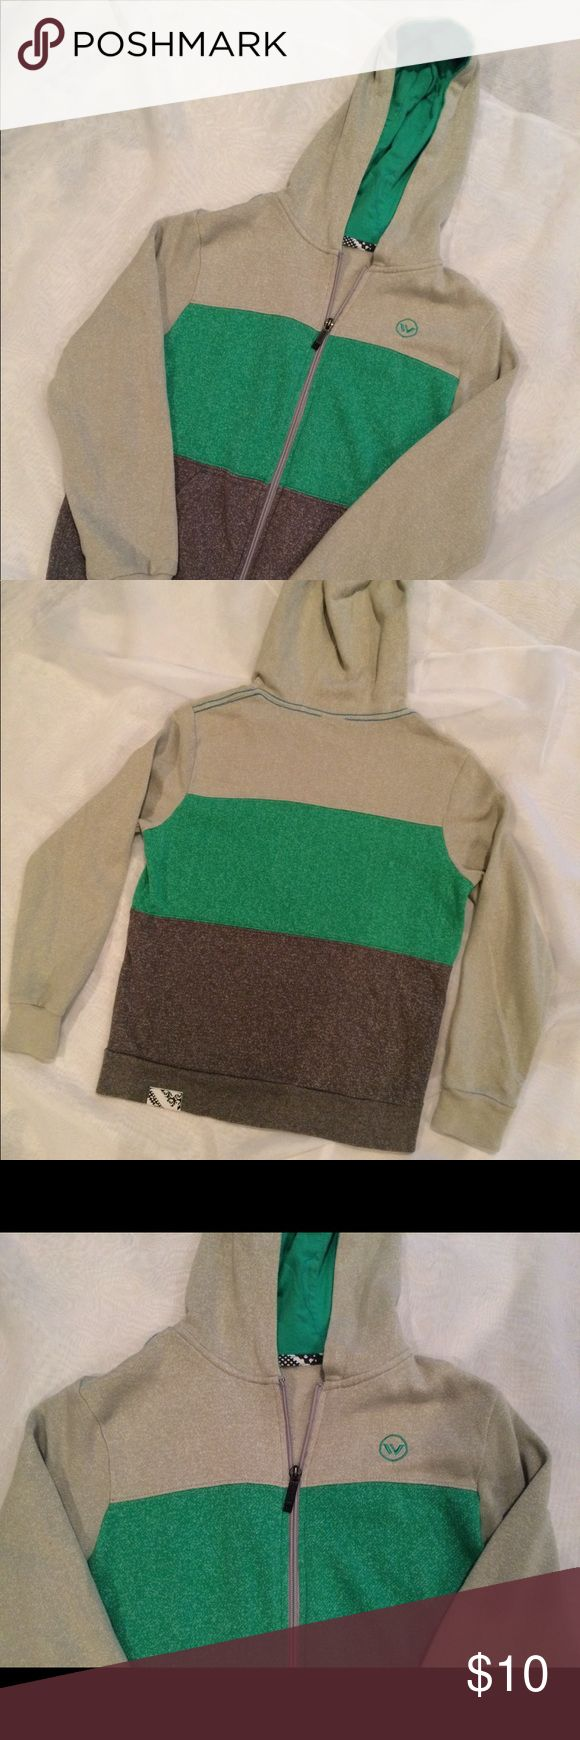 Boys Shawn White zip up sweat jacket.  Size 8. Light green and brown zip up jacket.  Really, really soft!  There is no tag on the size, we had cut it out but is a size 8 in boys.  In great condition!  60% cotton, 40% polyester. shawn white Shirts & Tops Sweatshirts & Hoodies